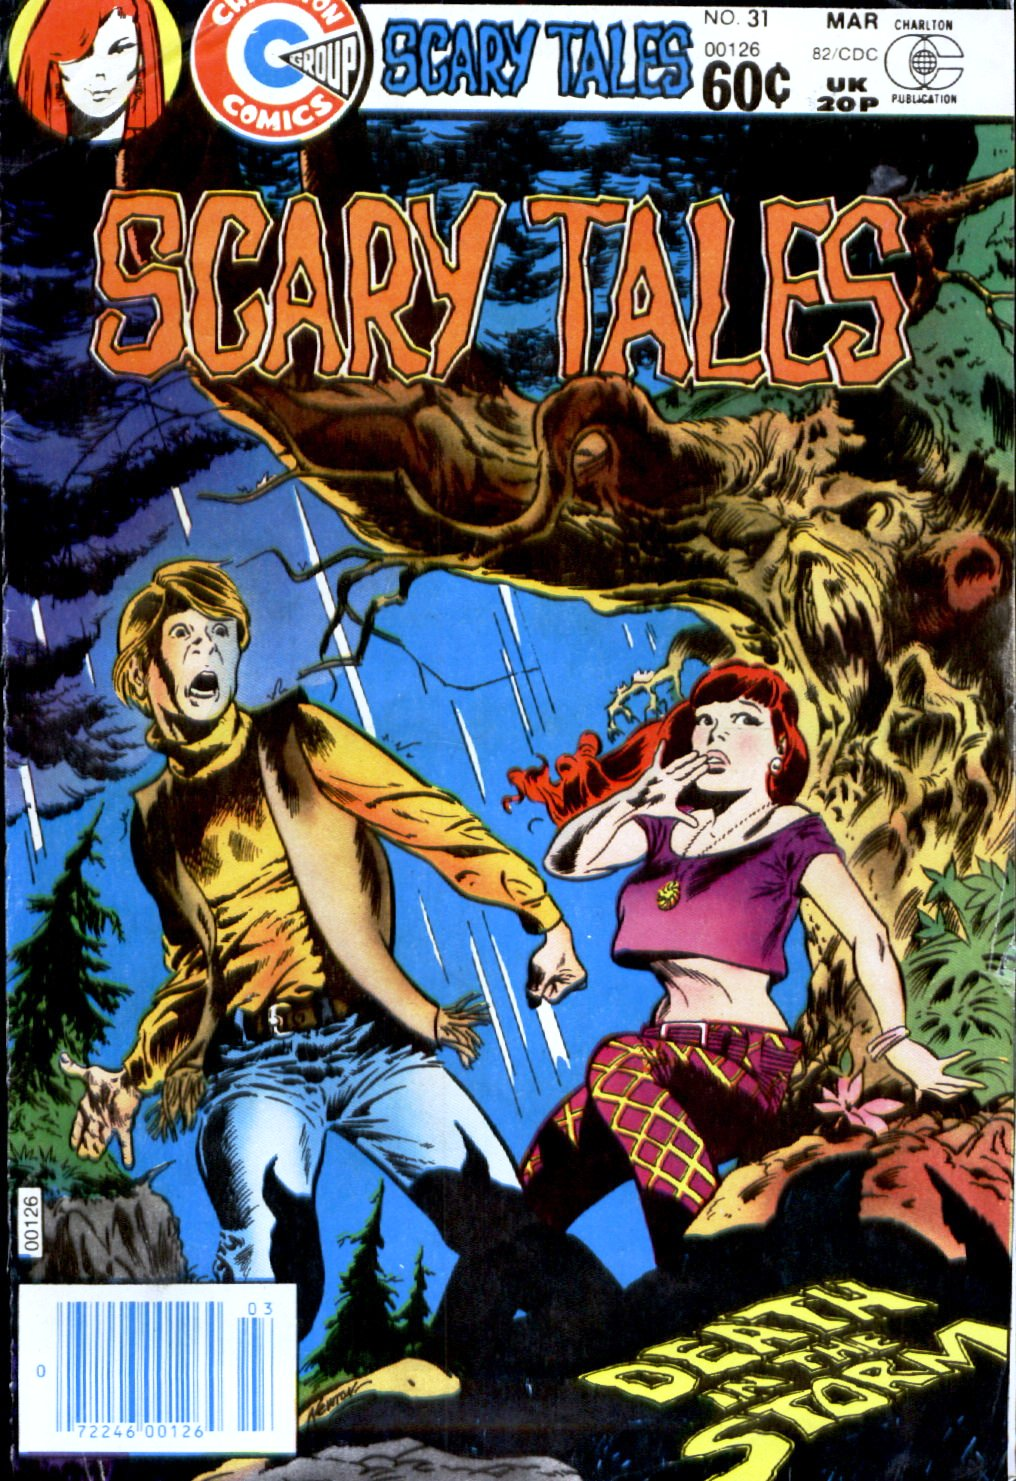 Read online Scary Tales comic -  Issue #31 - 1